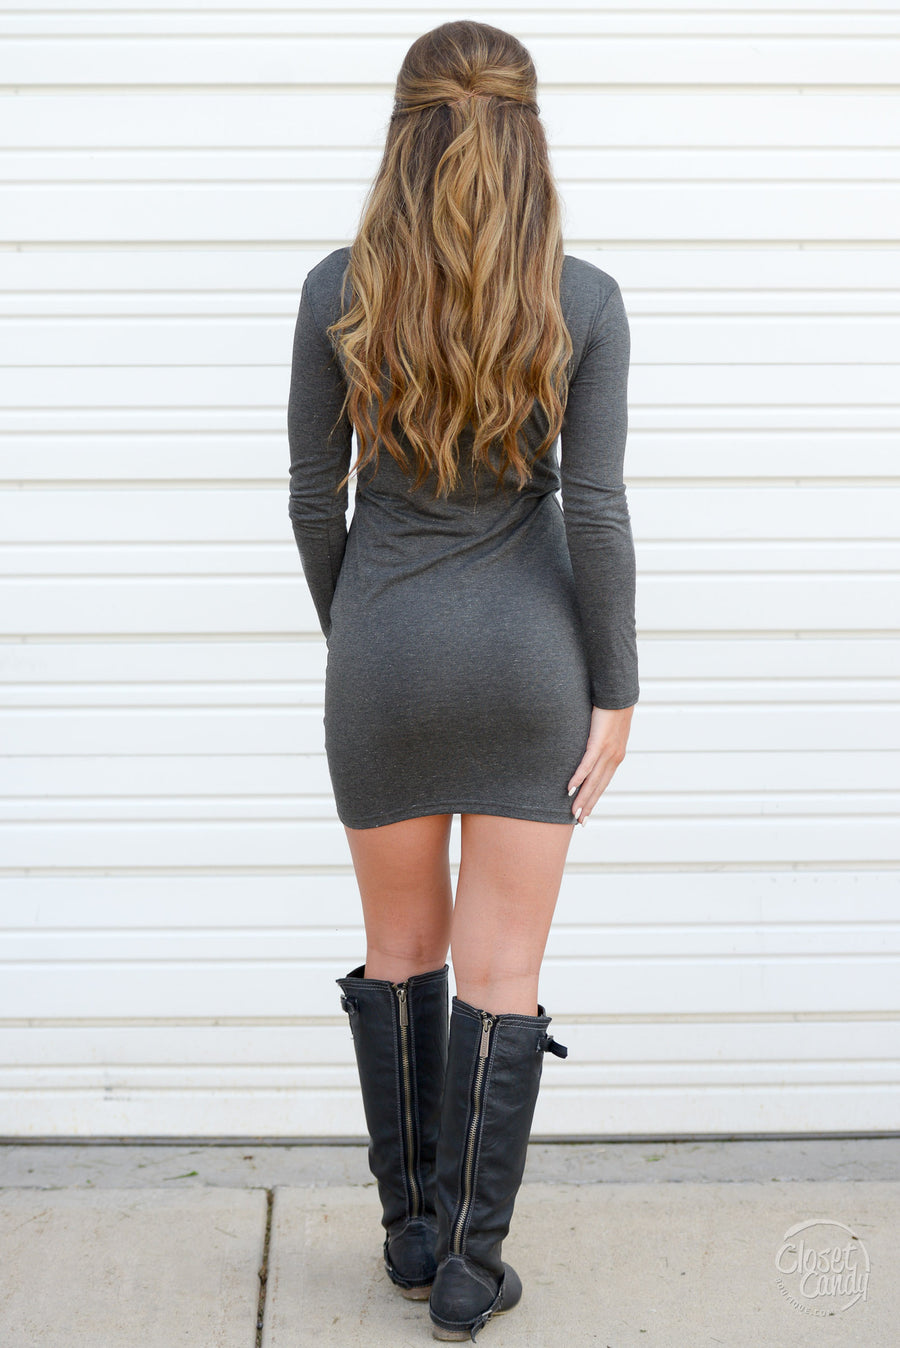 PIKO Dreams Are Forever Dress - charcoal long sleeve fitted dress, Closet Candy Boutique 1